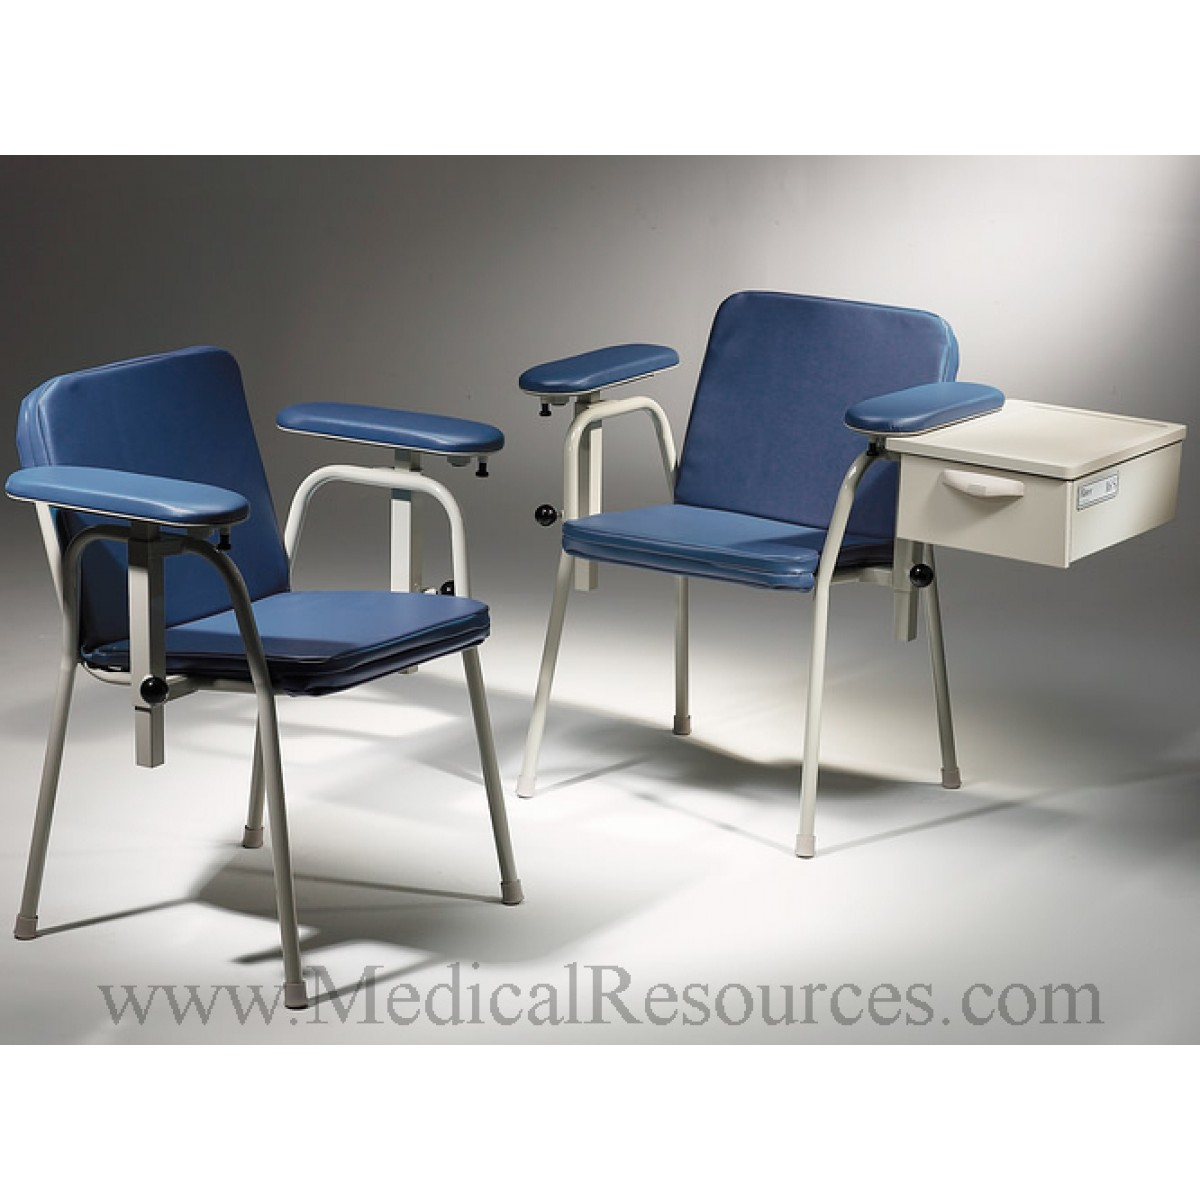 Ritter 281 Blood Drawing Chair